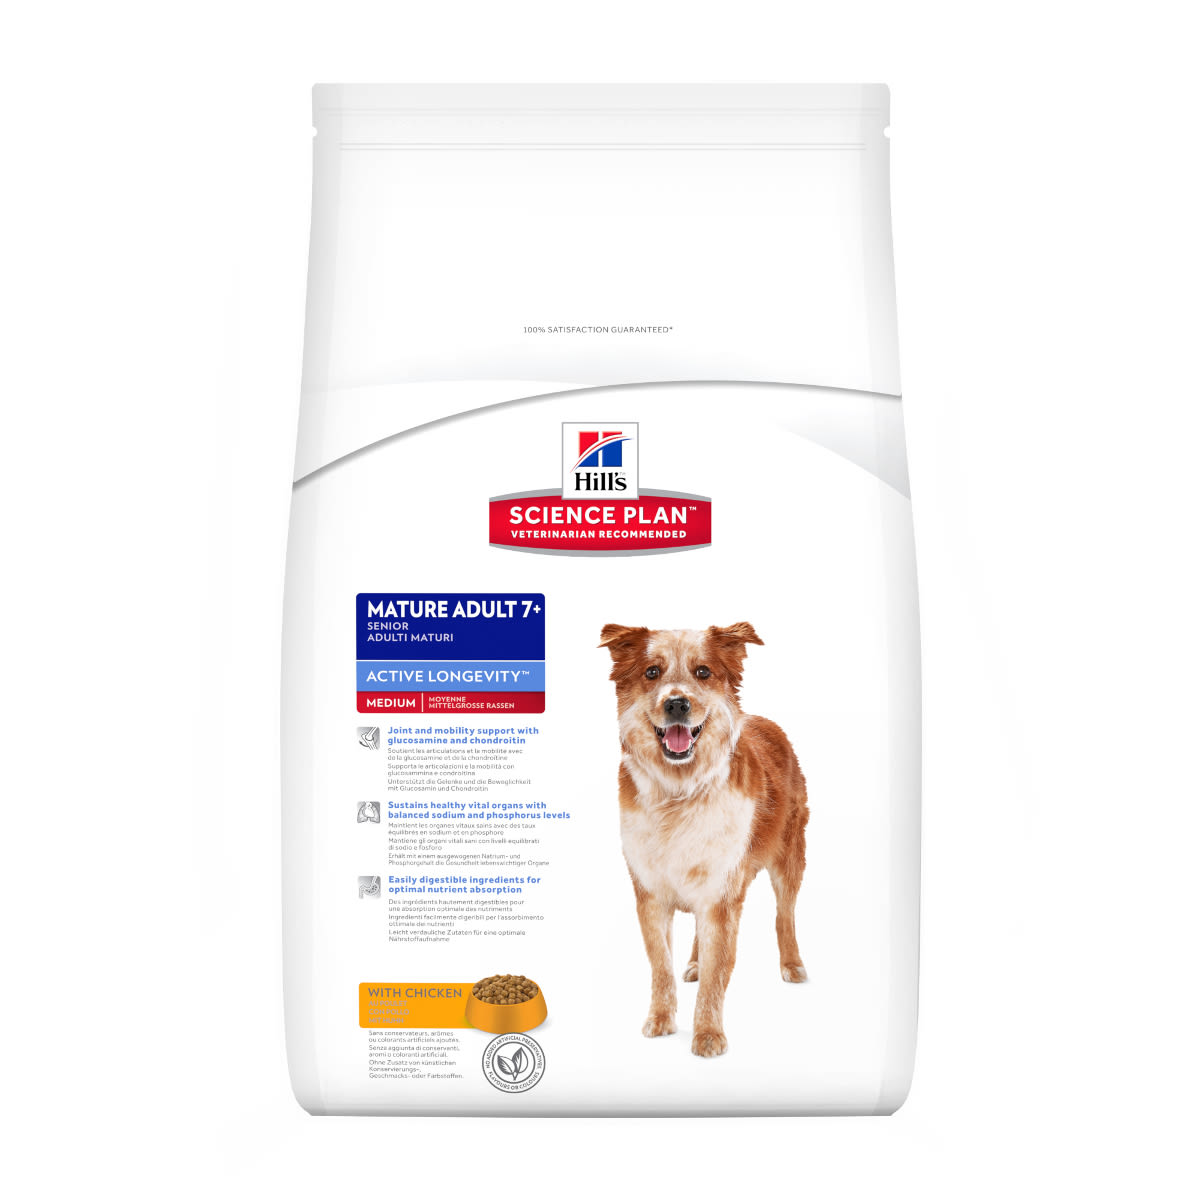 Activa Dog Food Reviews